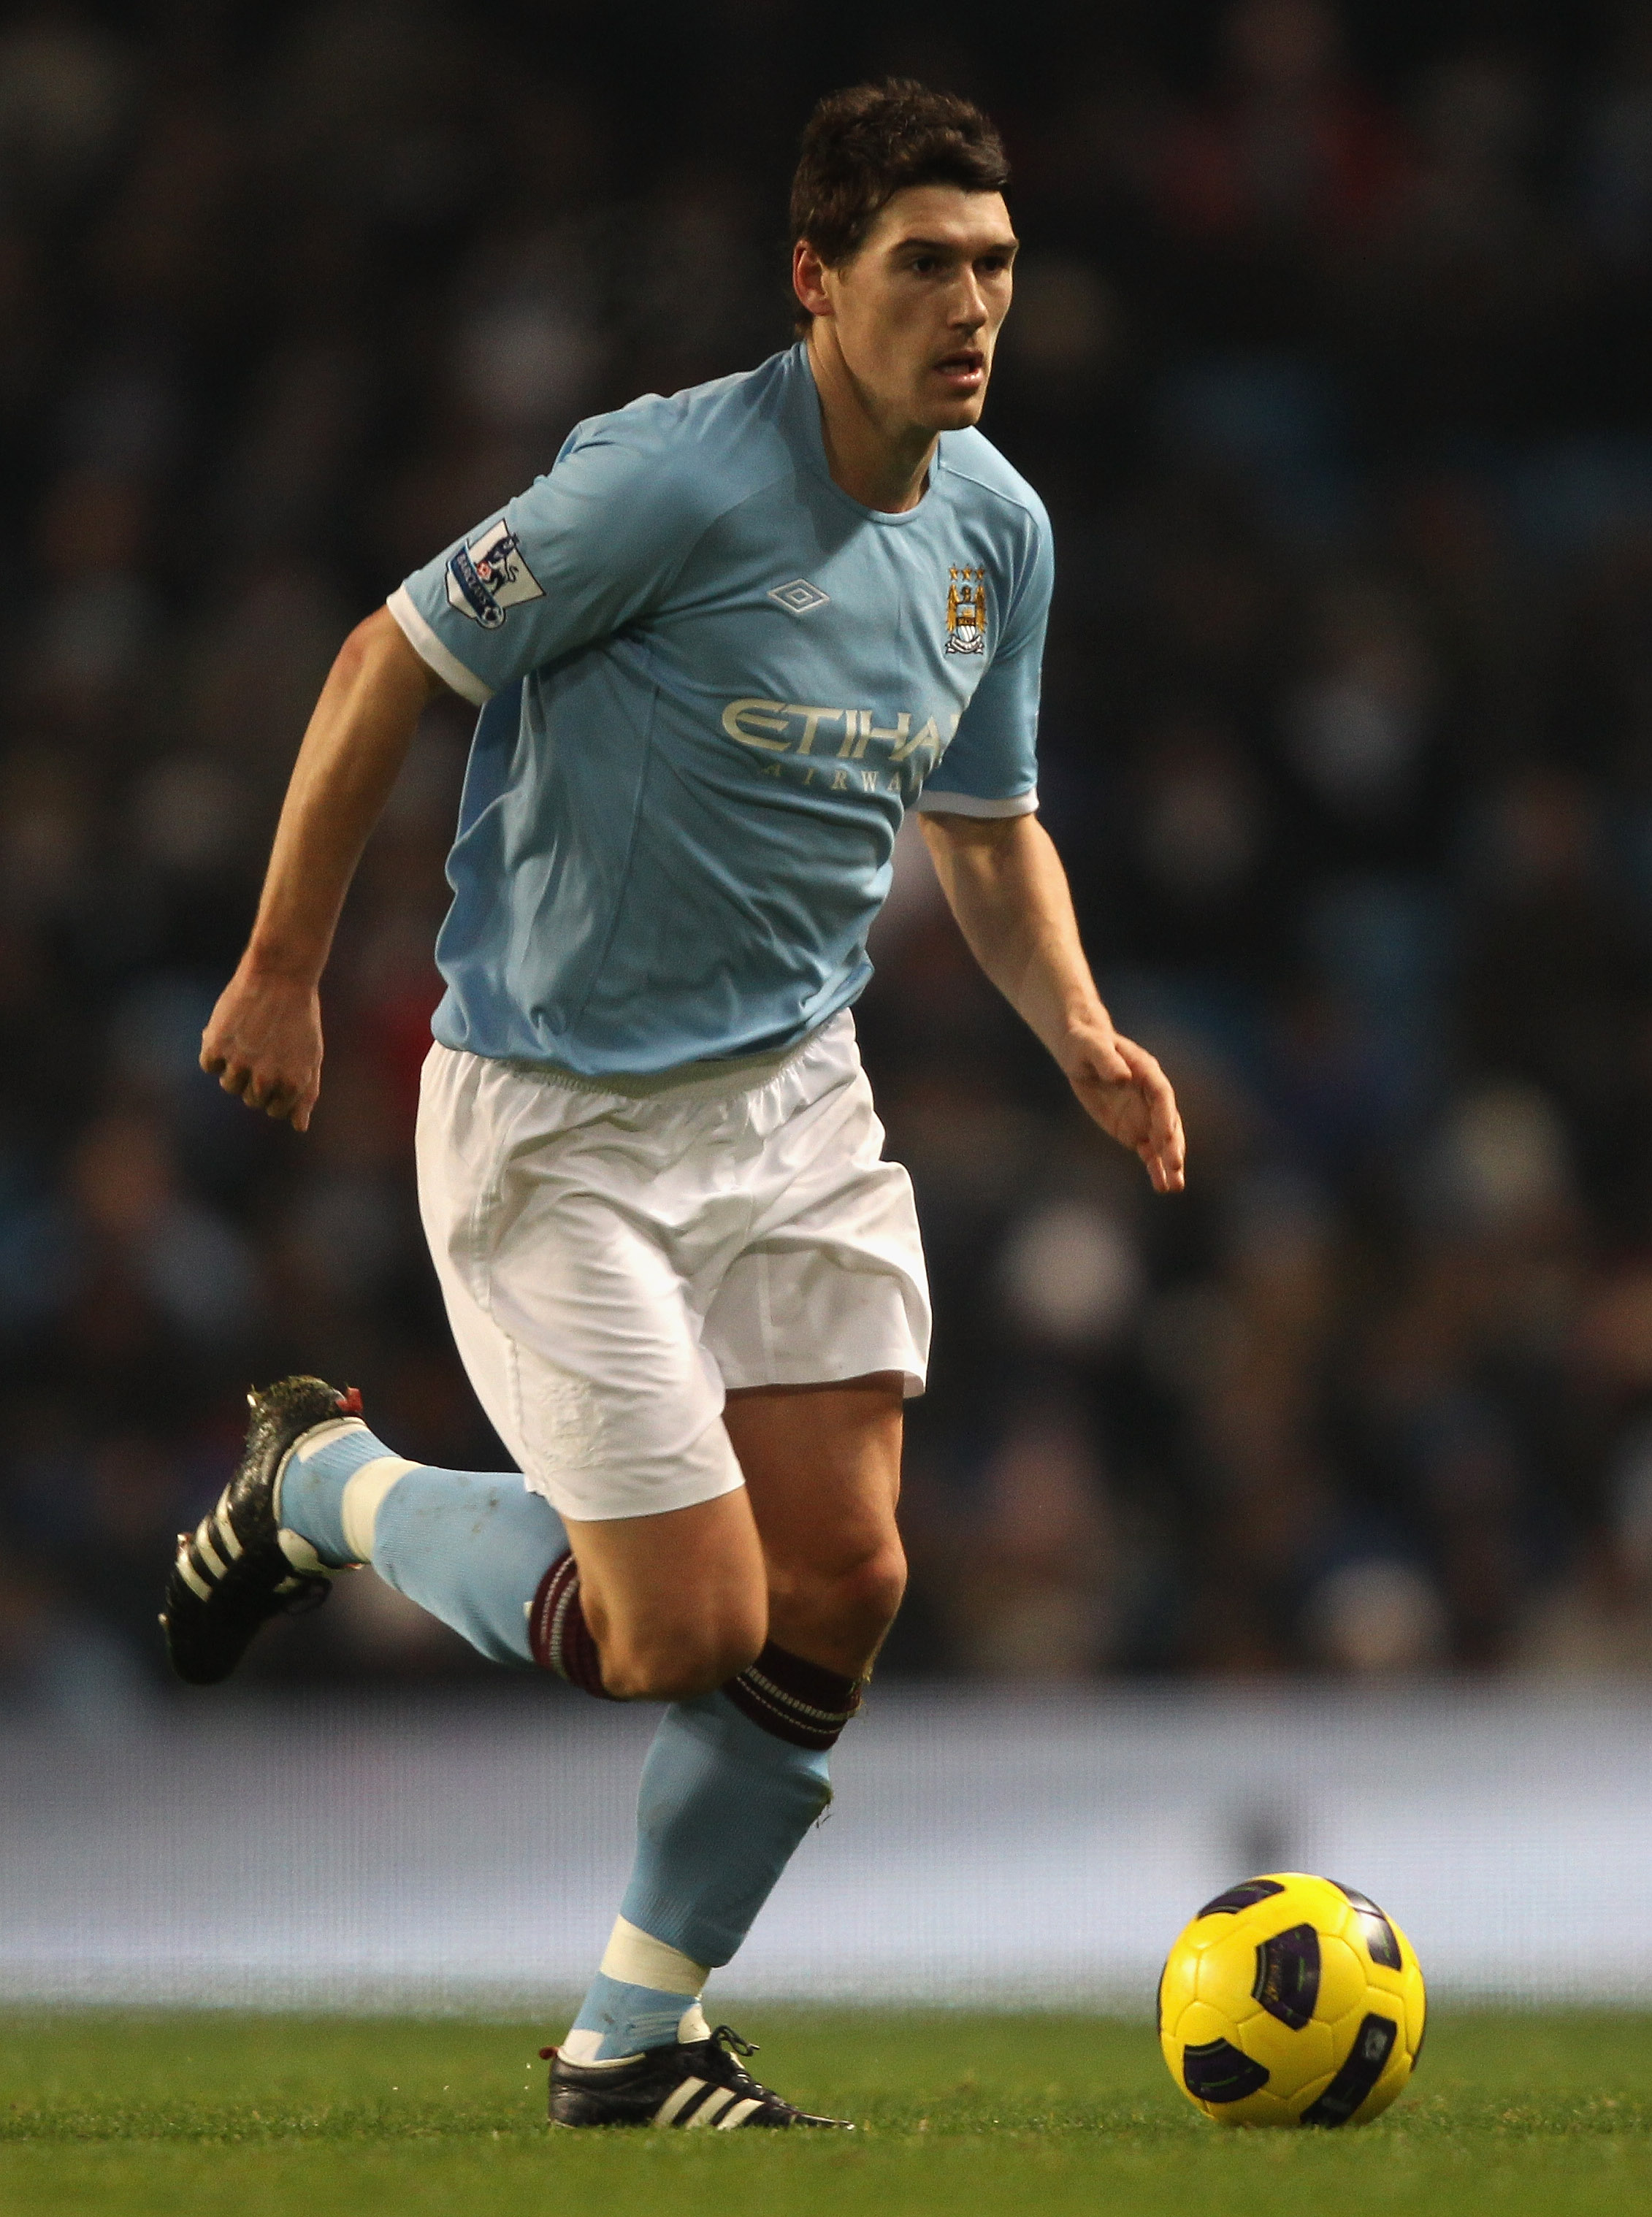 MANCHESTER, ENGLAND - DECEMBER 20: Gareth Barry of Manchester City in action during the Barclays Premier League match between Manchester City and Everton at City of Manchester Stadium on December 20, 2010 in Manchester, England.  (Photo by Clive Brunskill